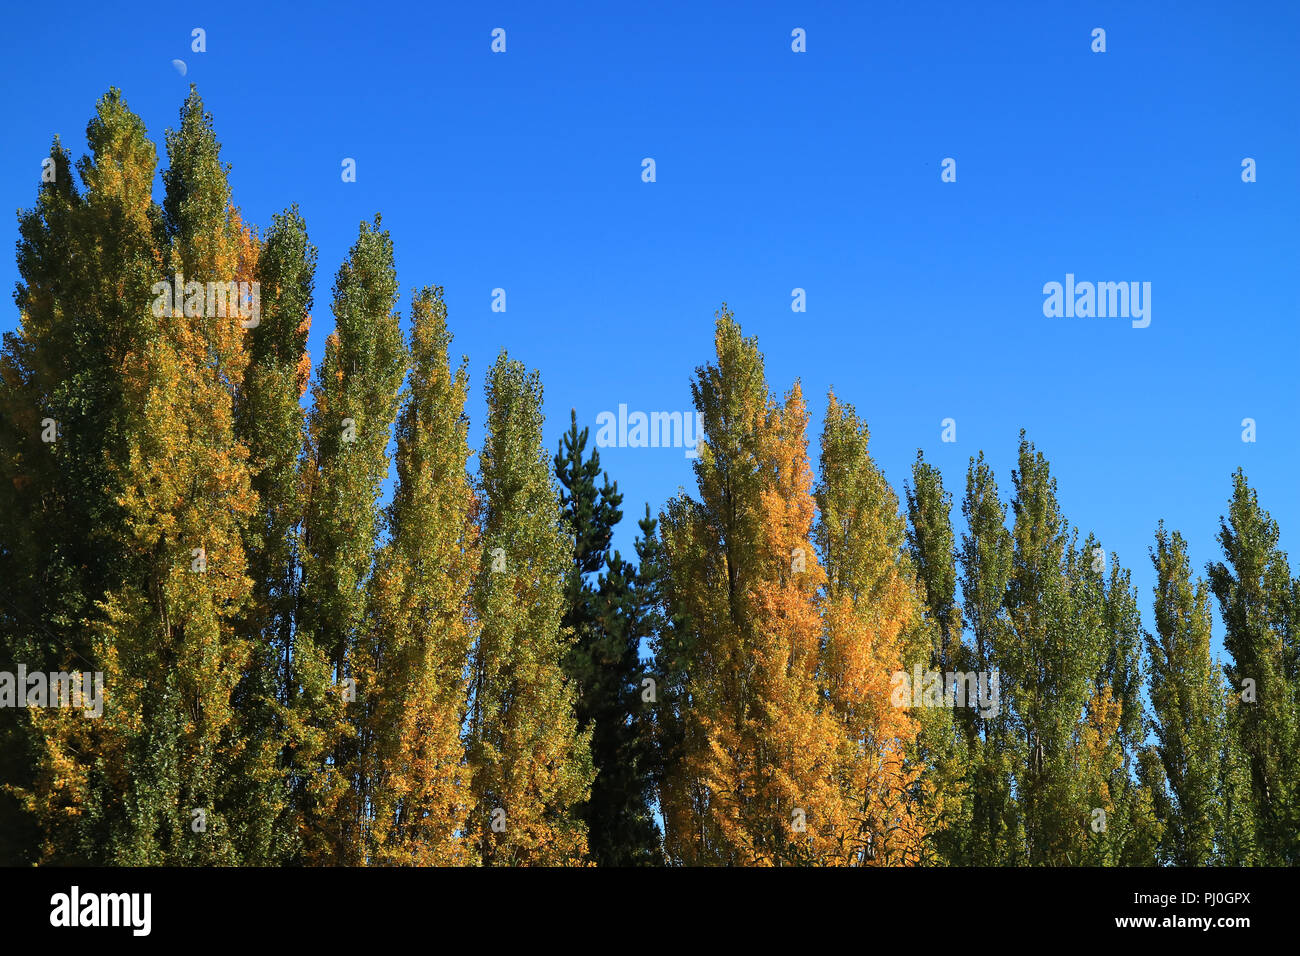 The color changing of Pine trees against vivid blue sky, autumn in El Calafate, Patagonia, Argentina - Stock Image